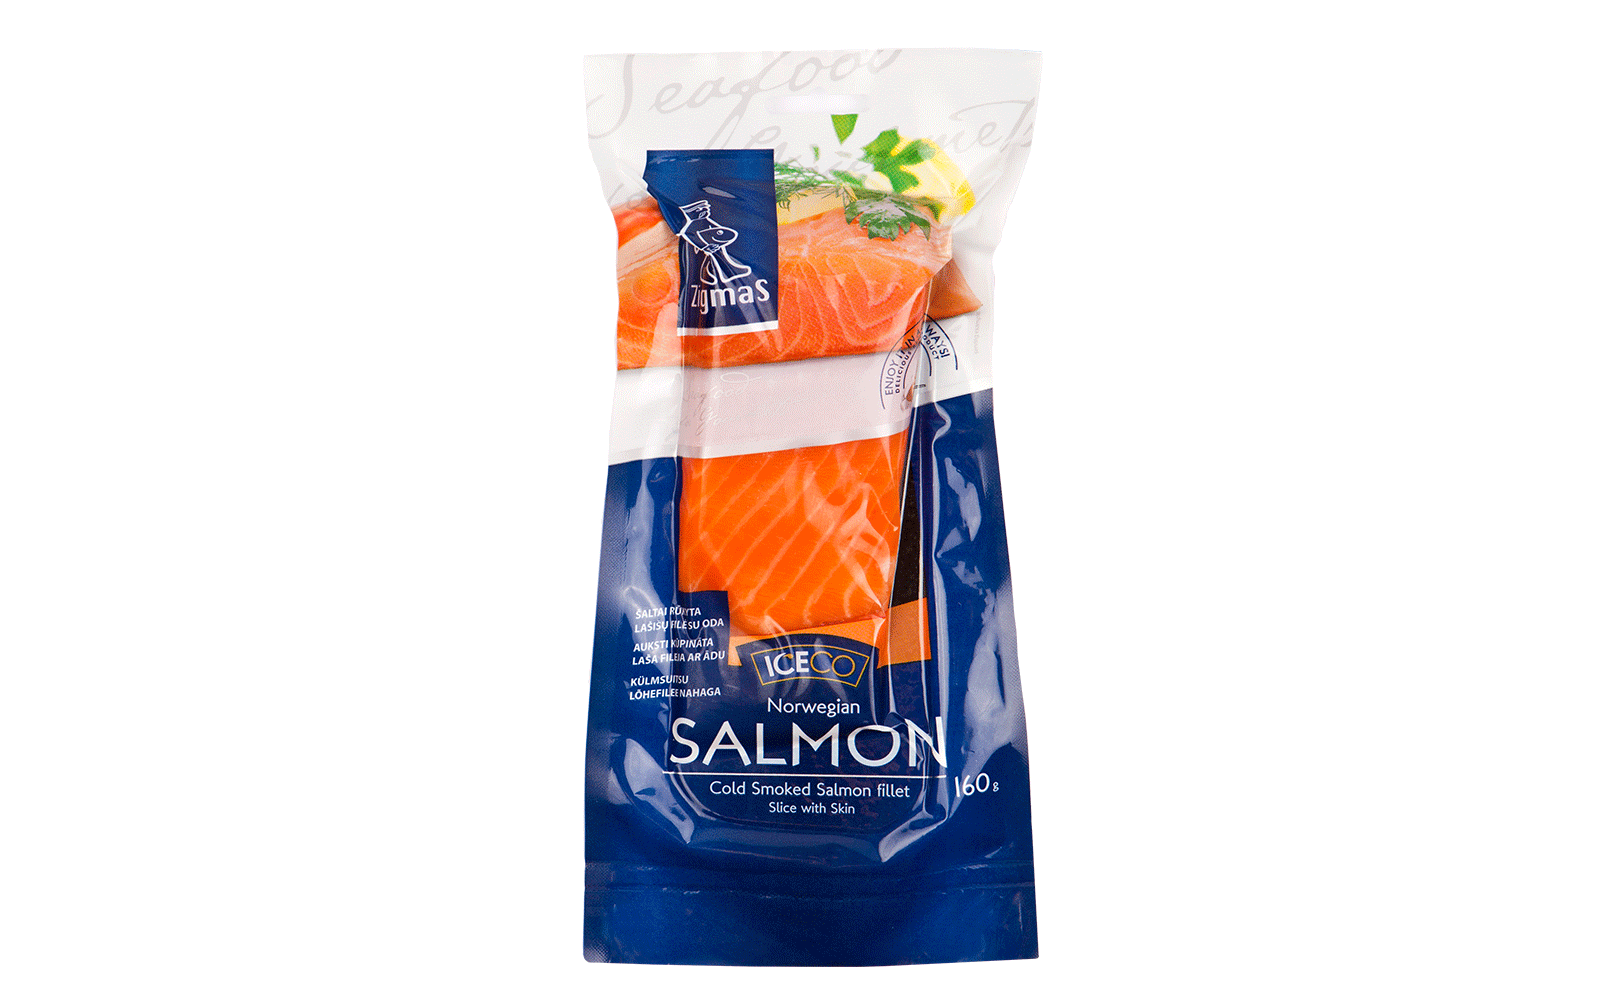 http://www.icecofish.com/wp-content/uploads/2016/06/zigmas-cold-smoked-salmon-fillet-1600x1000.png